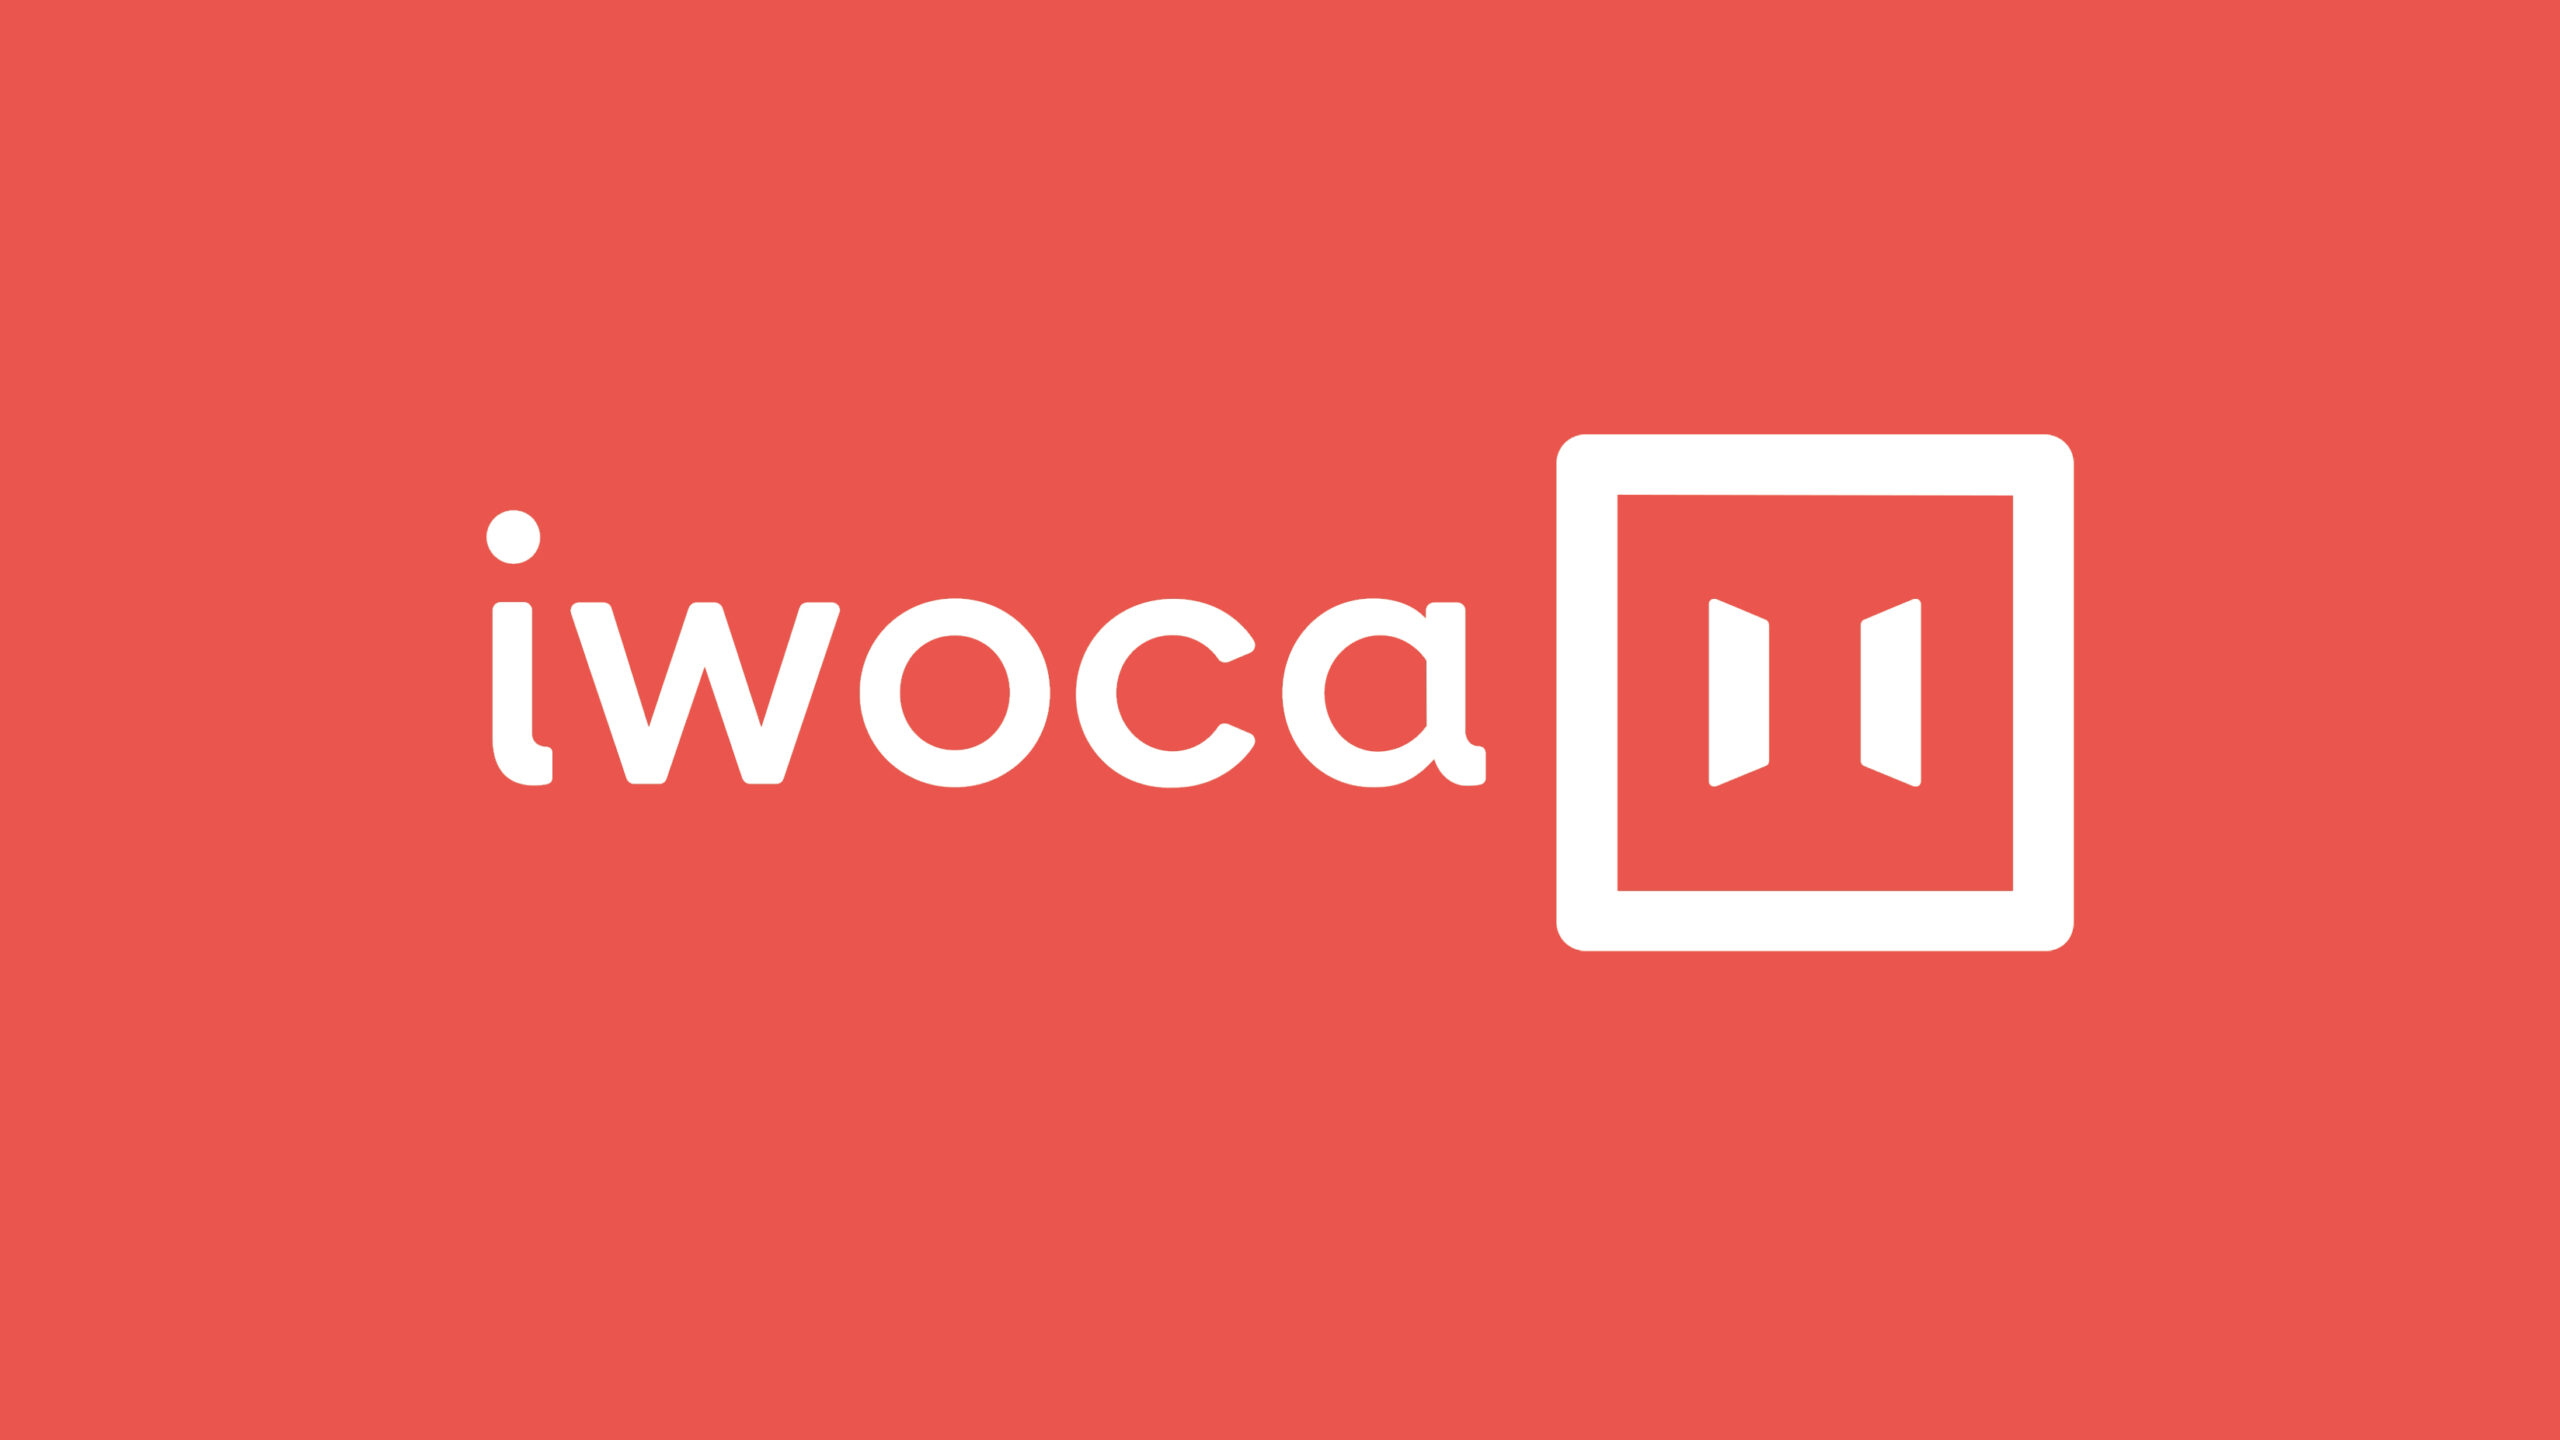 Iwoca to lend more than £200m to small businesses before January